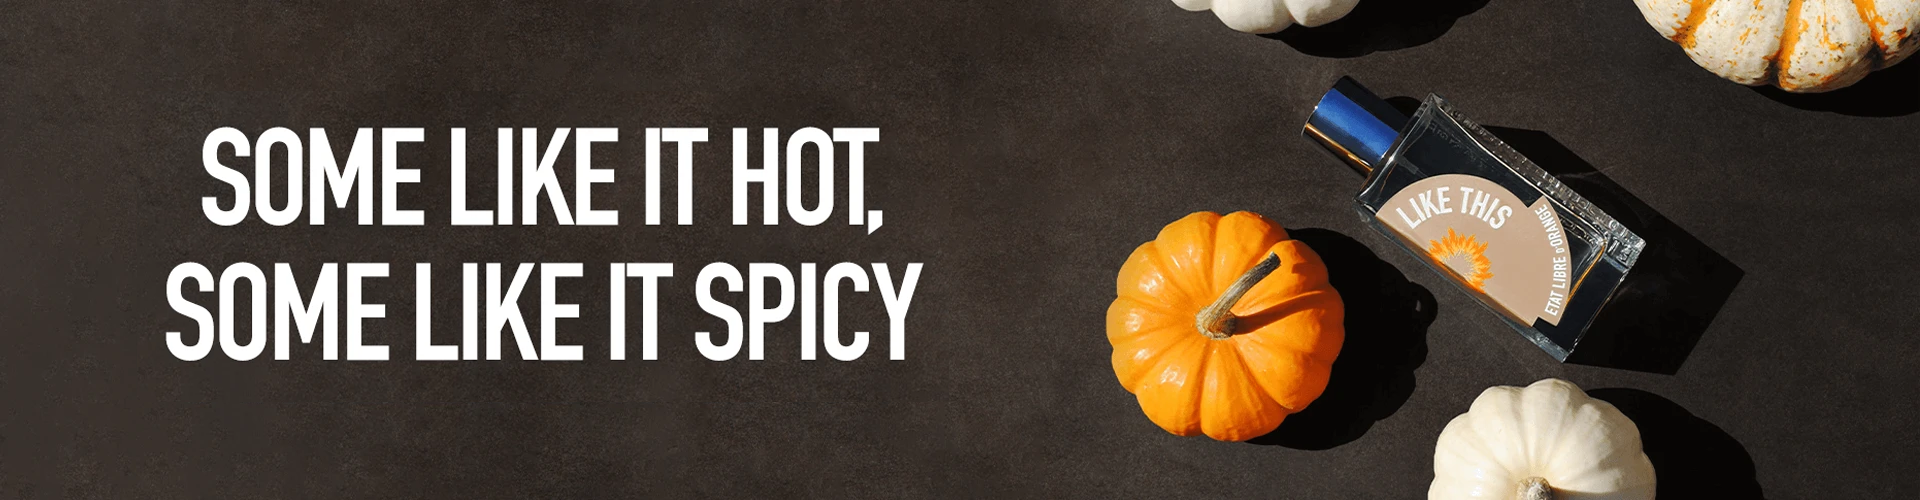 Some like it hot, some like it spicy